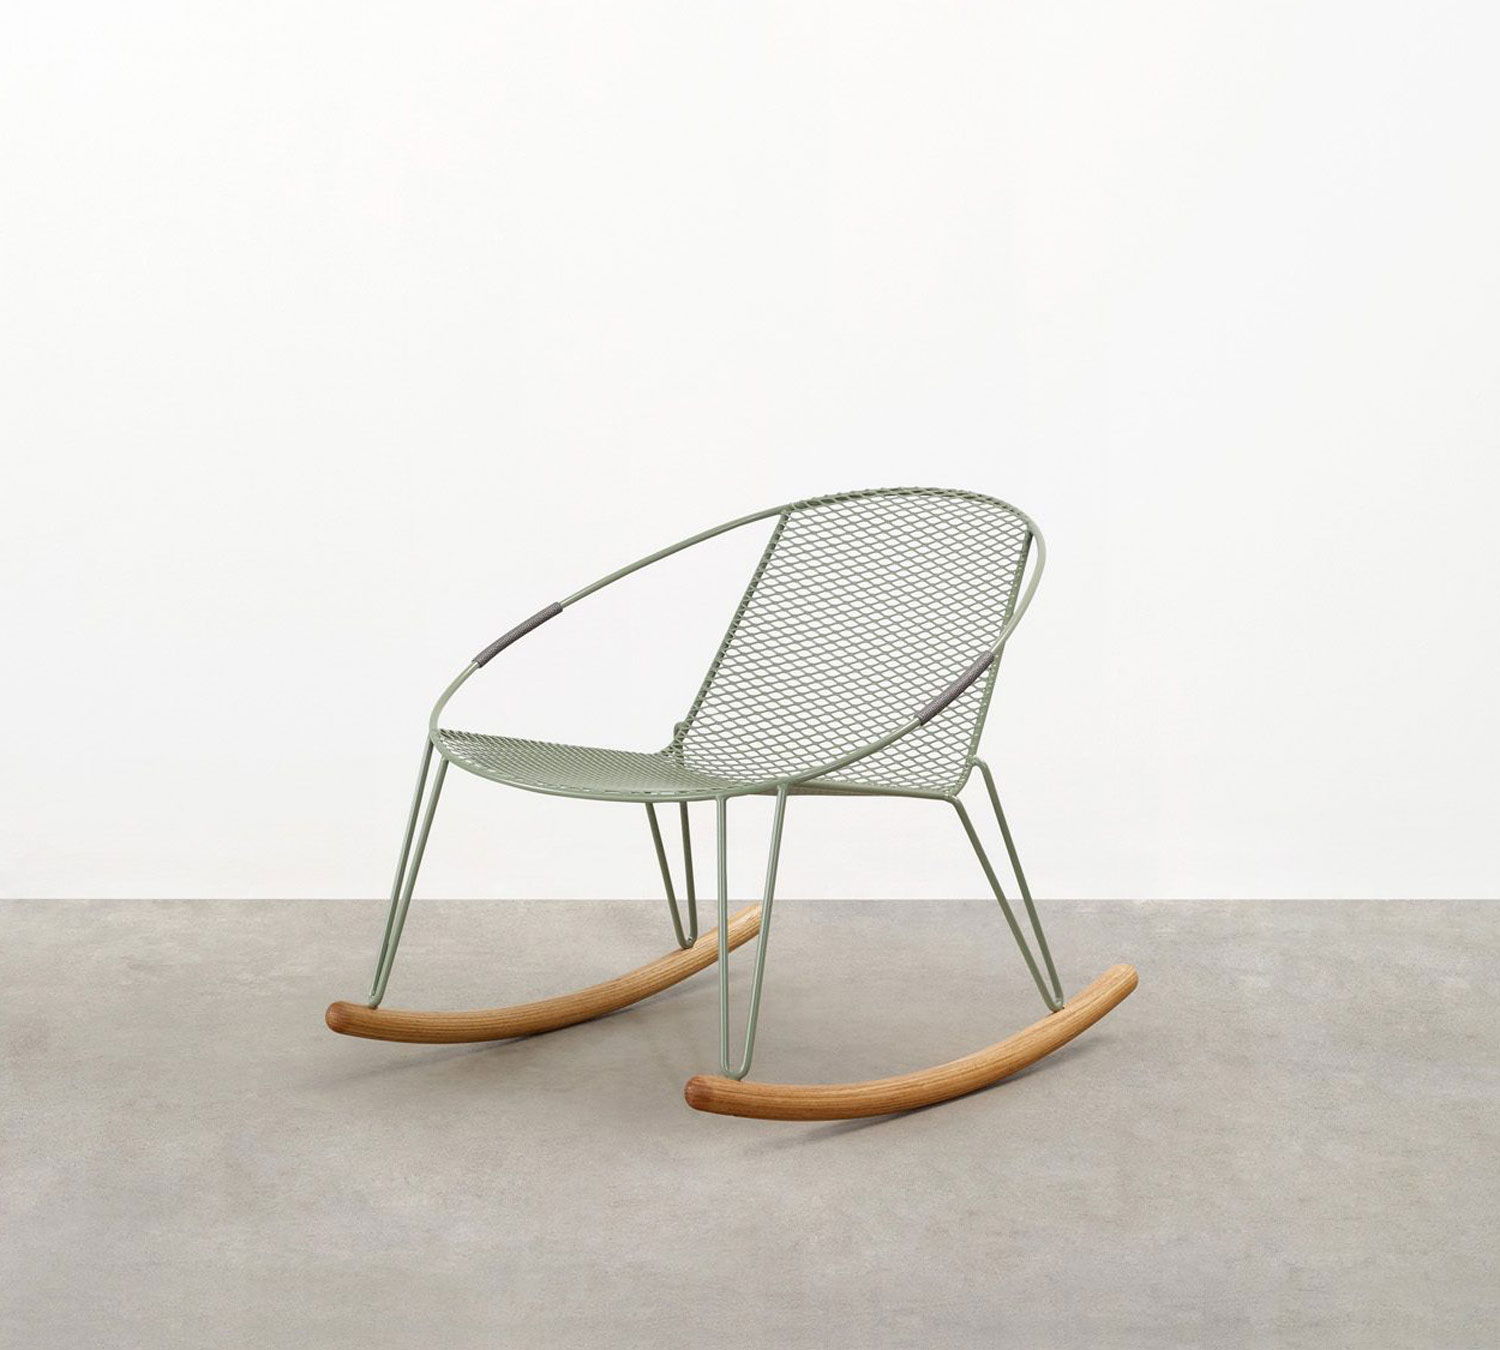 the Volley Rocker - a modern outdoor rocking chair with a distinct mid-century modern vibe designed by Adam Goodrum.